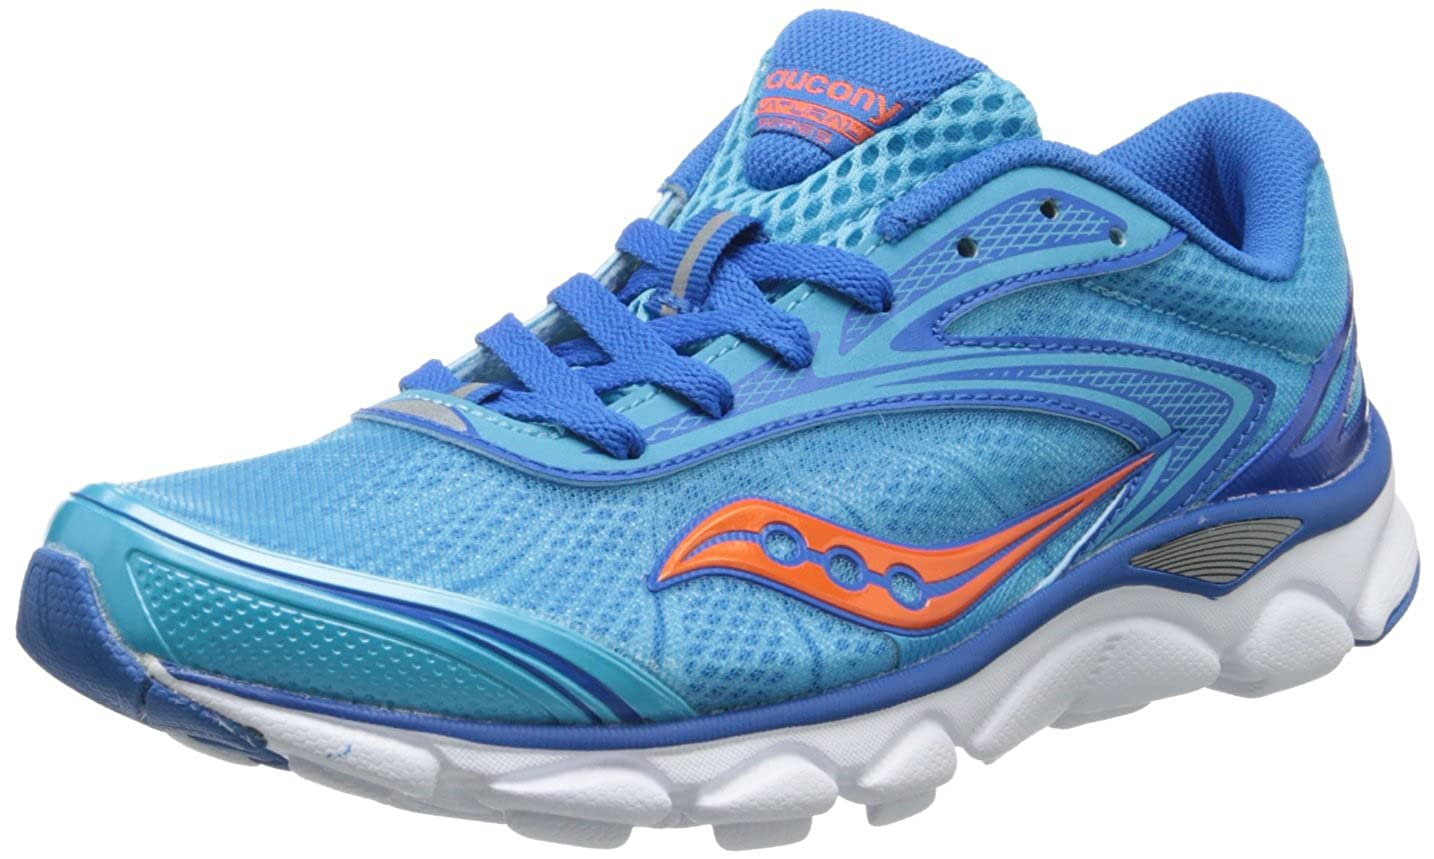 19 Running Shoes To Replace Your Worn Out Pair